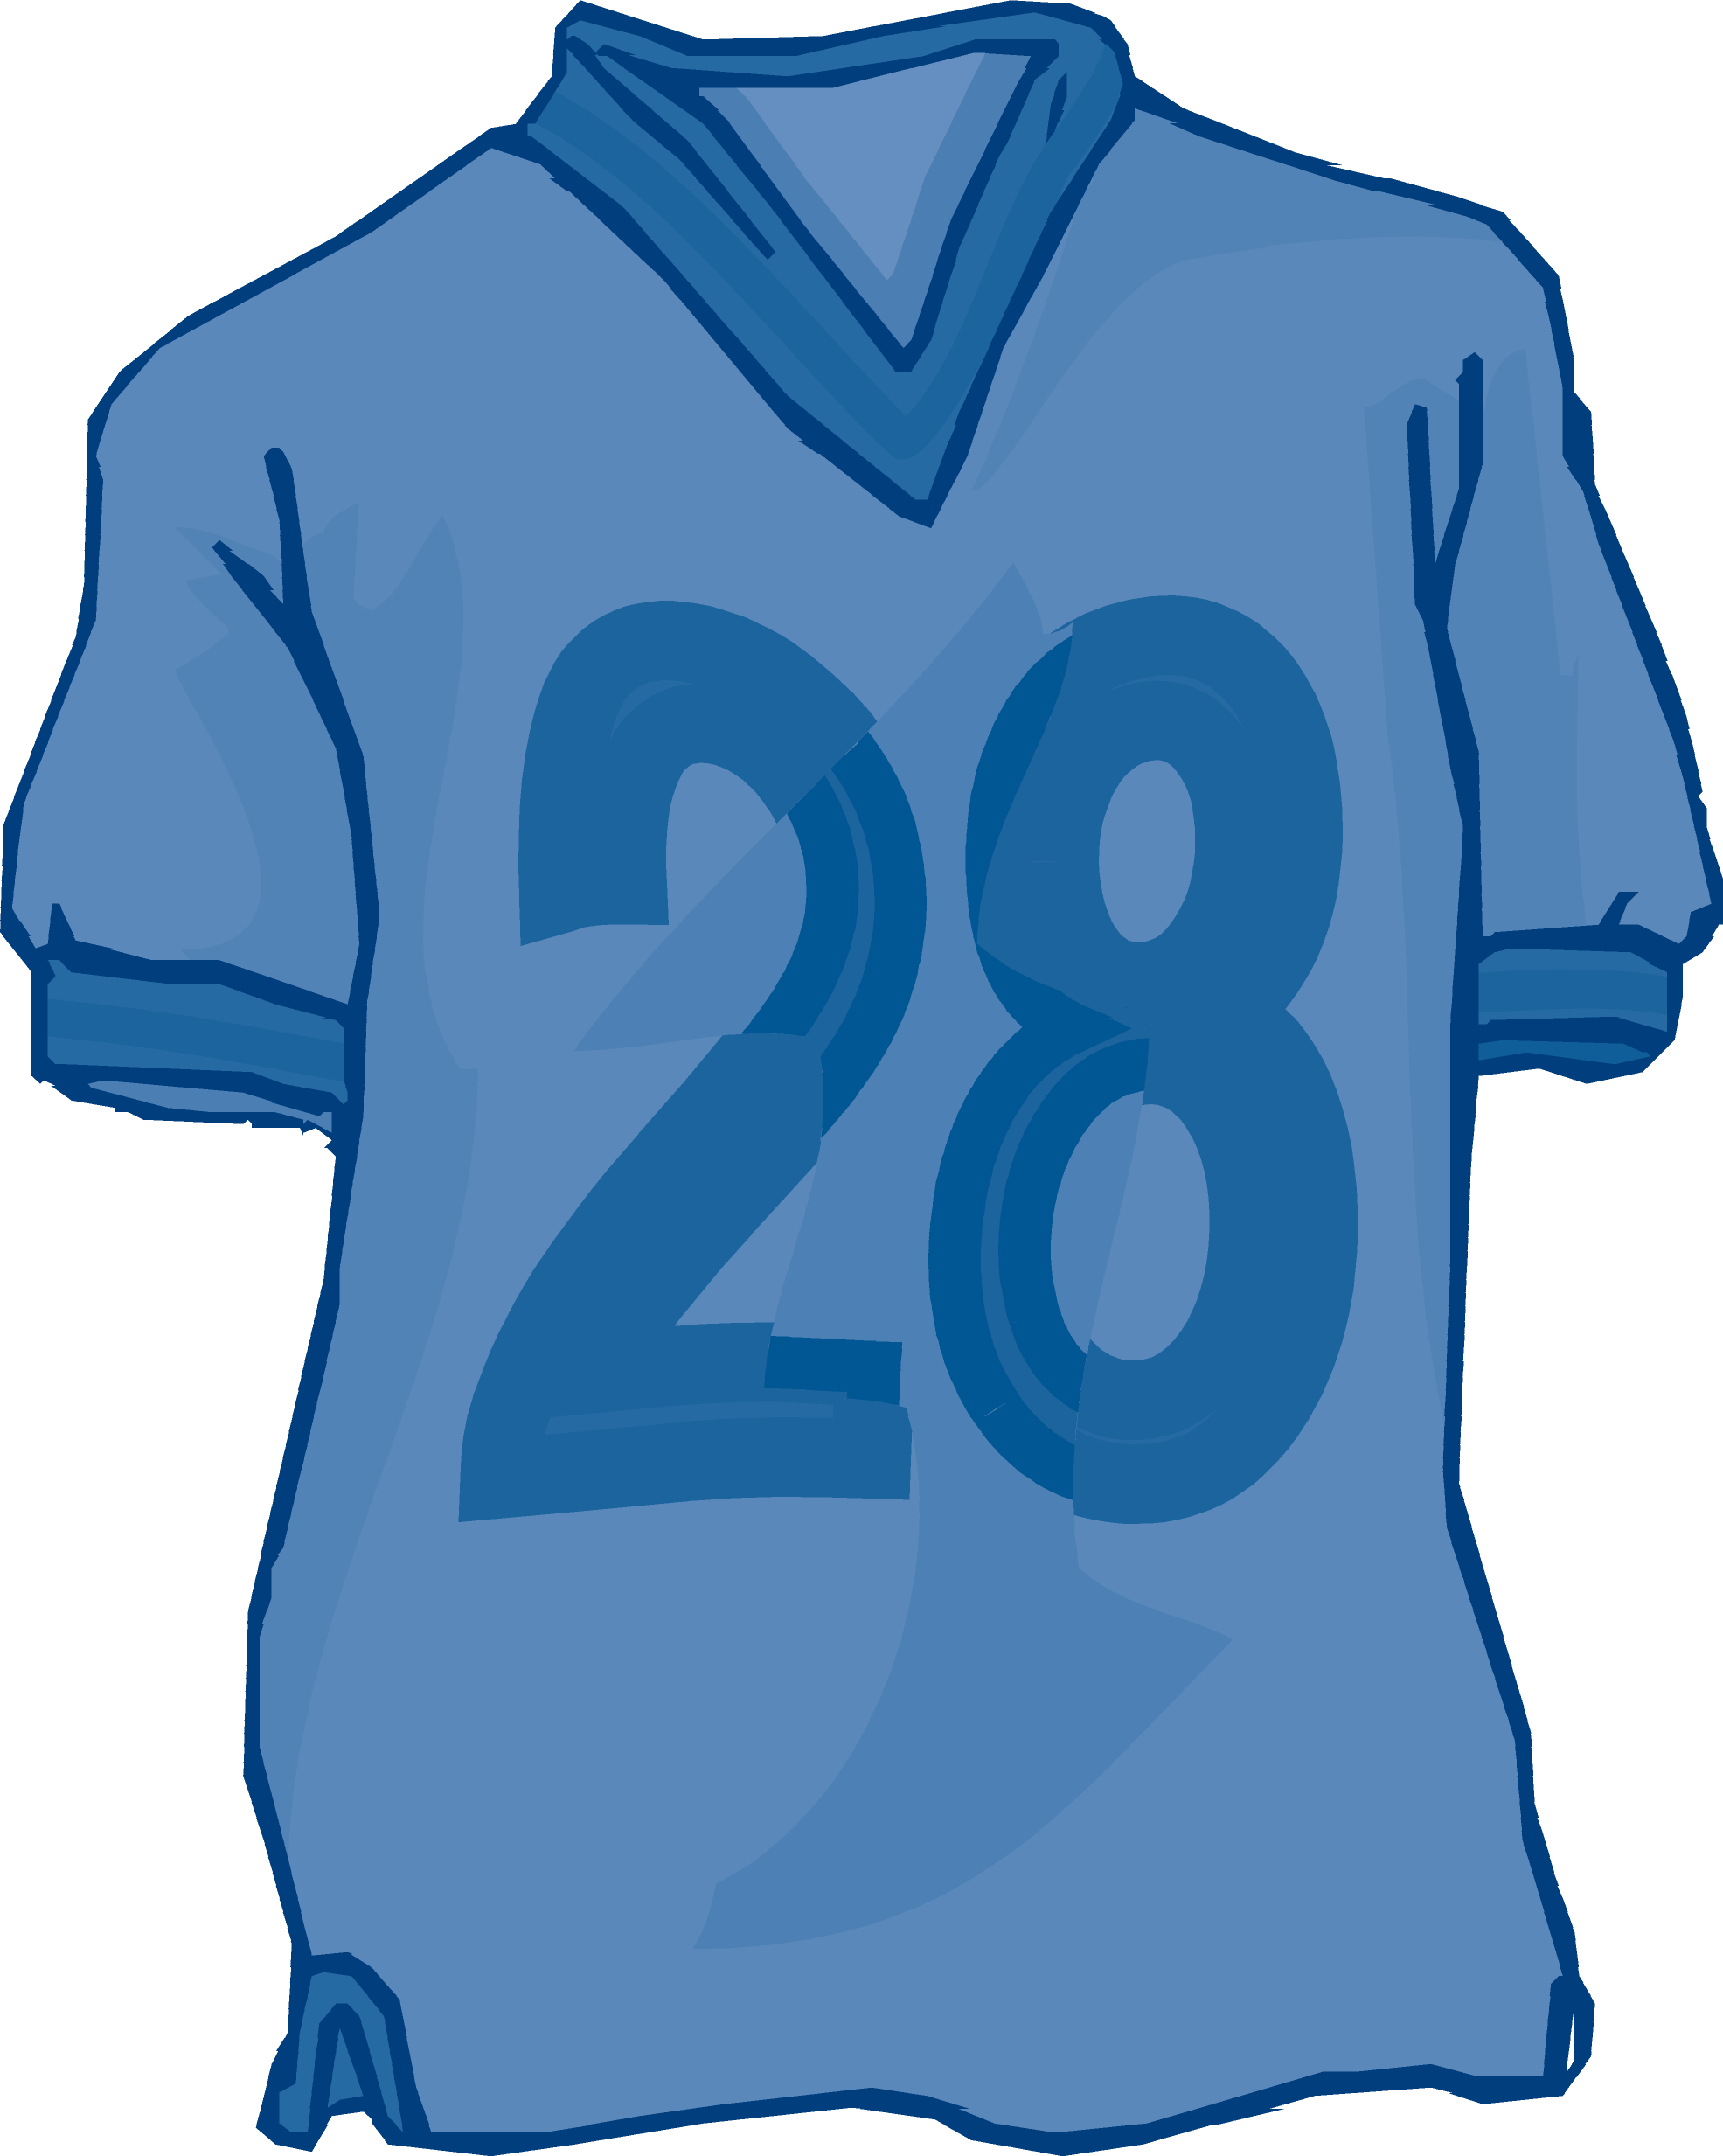 Soccer Shirt Clipart 20 Free Cliparts Download Images On